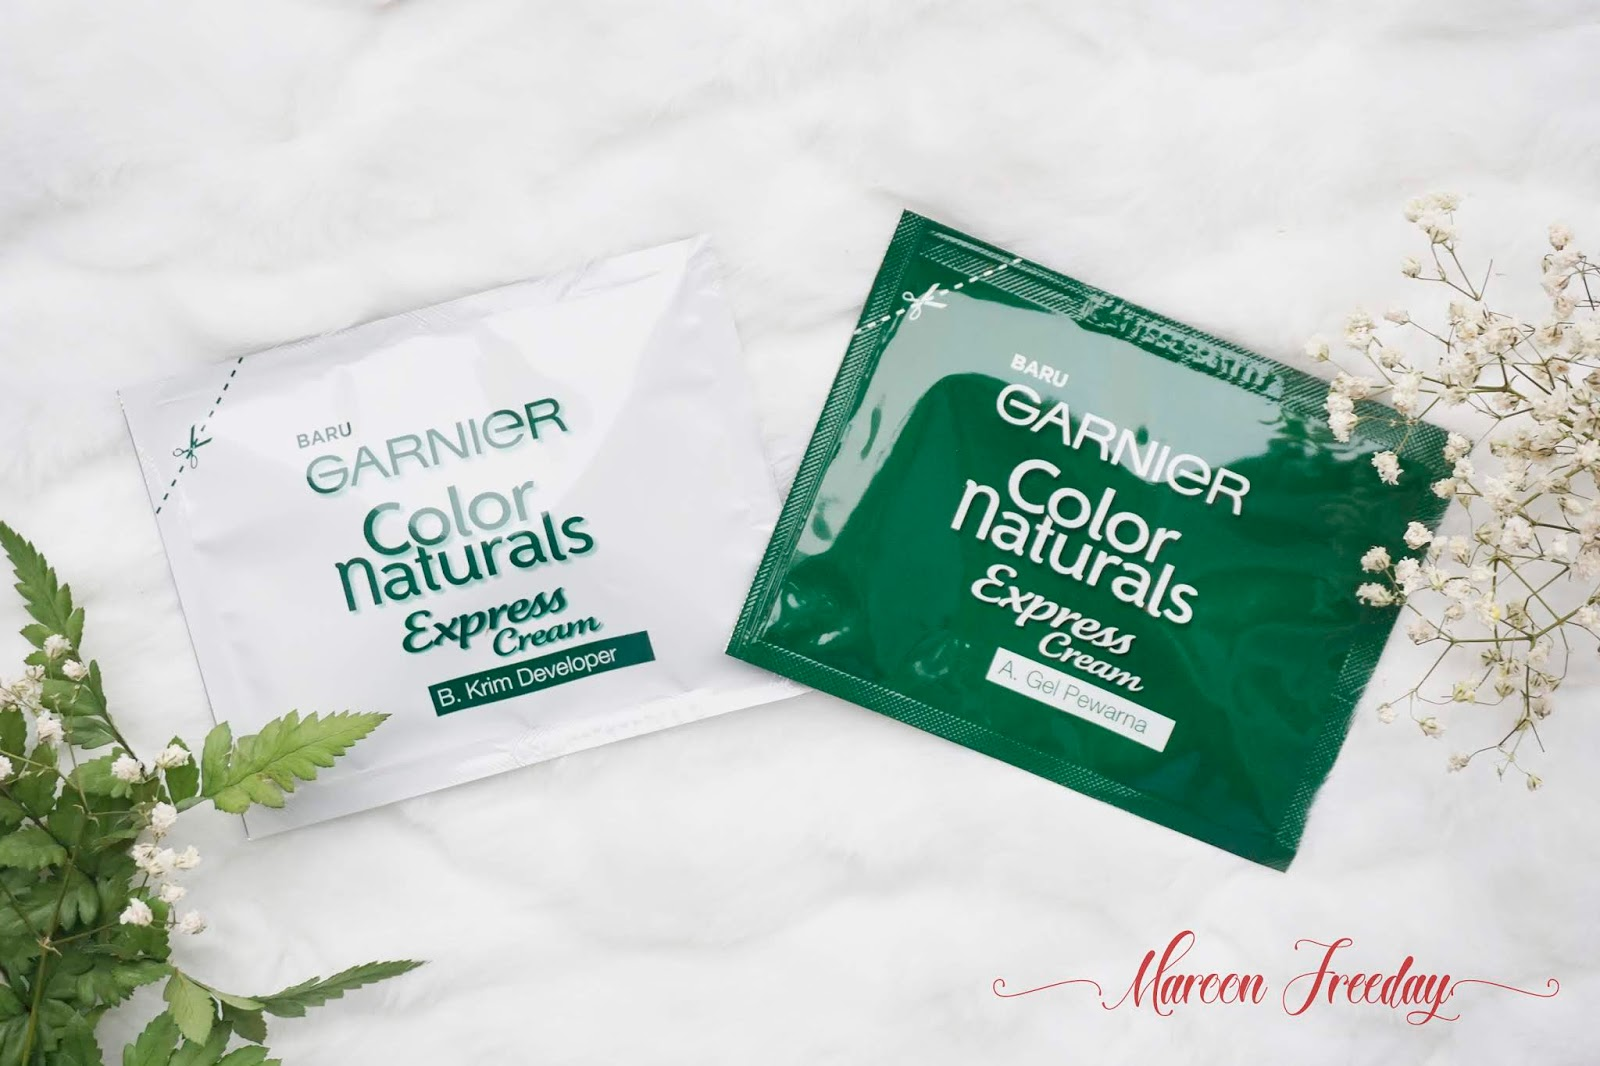 Review Garnier Color Naturals Express Cream